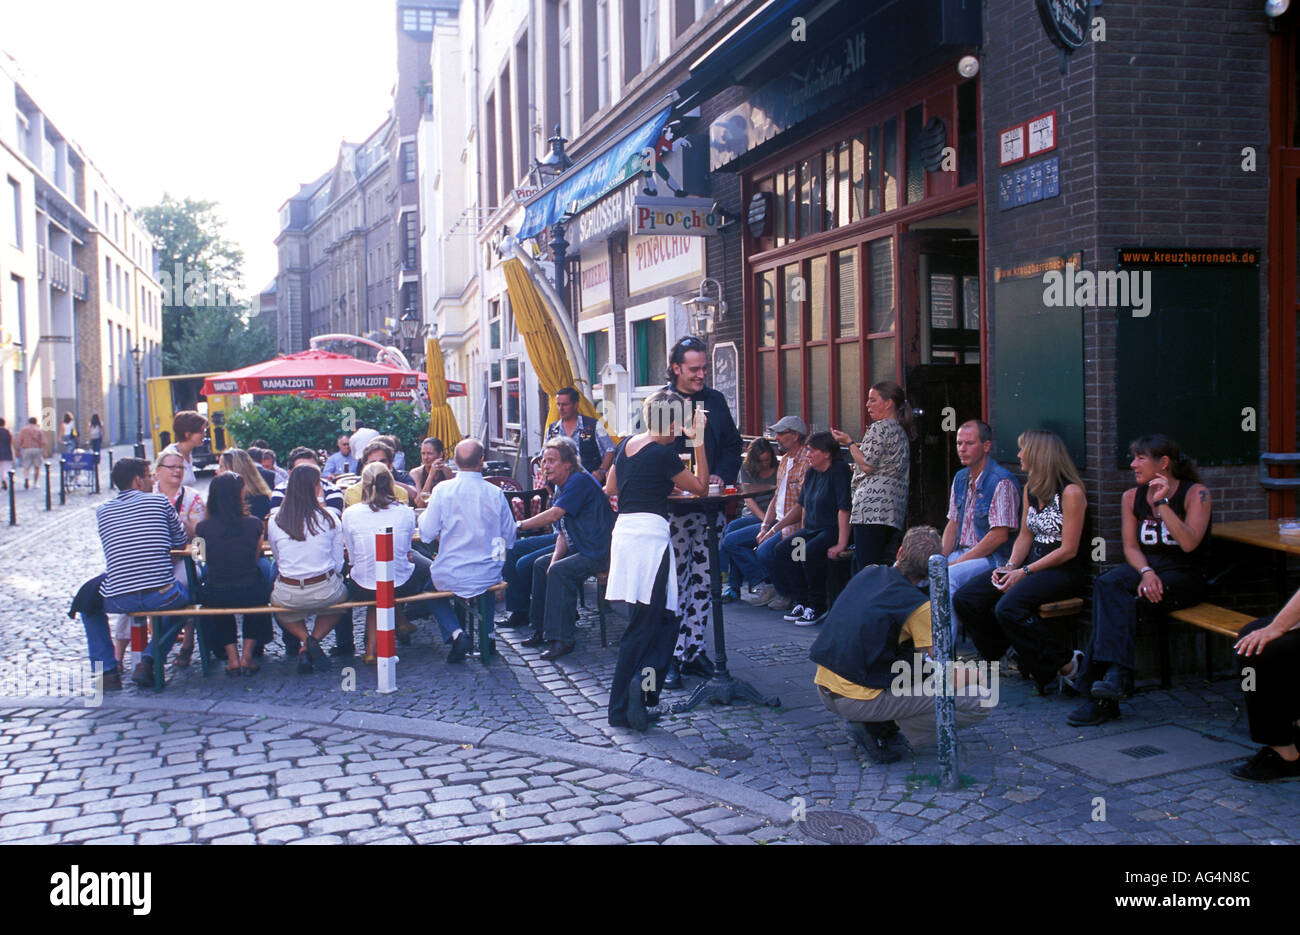 Germany North Rhine Westphalia Dusseldorf People drinking beer outside a  beer hall in the Altstadt Old Town